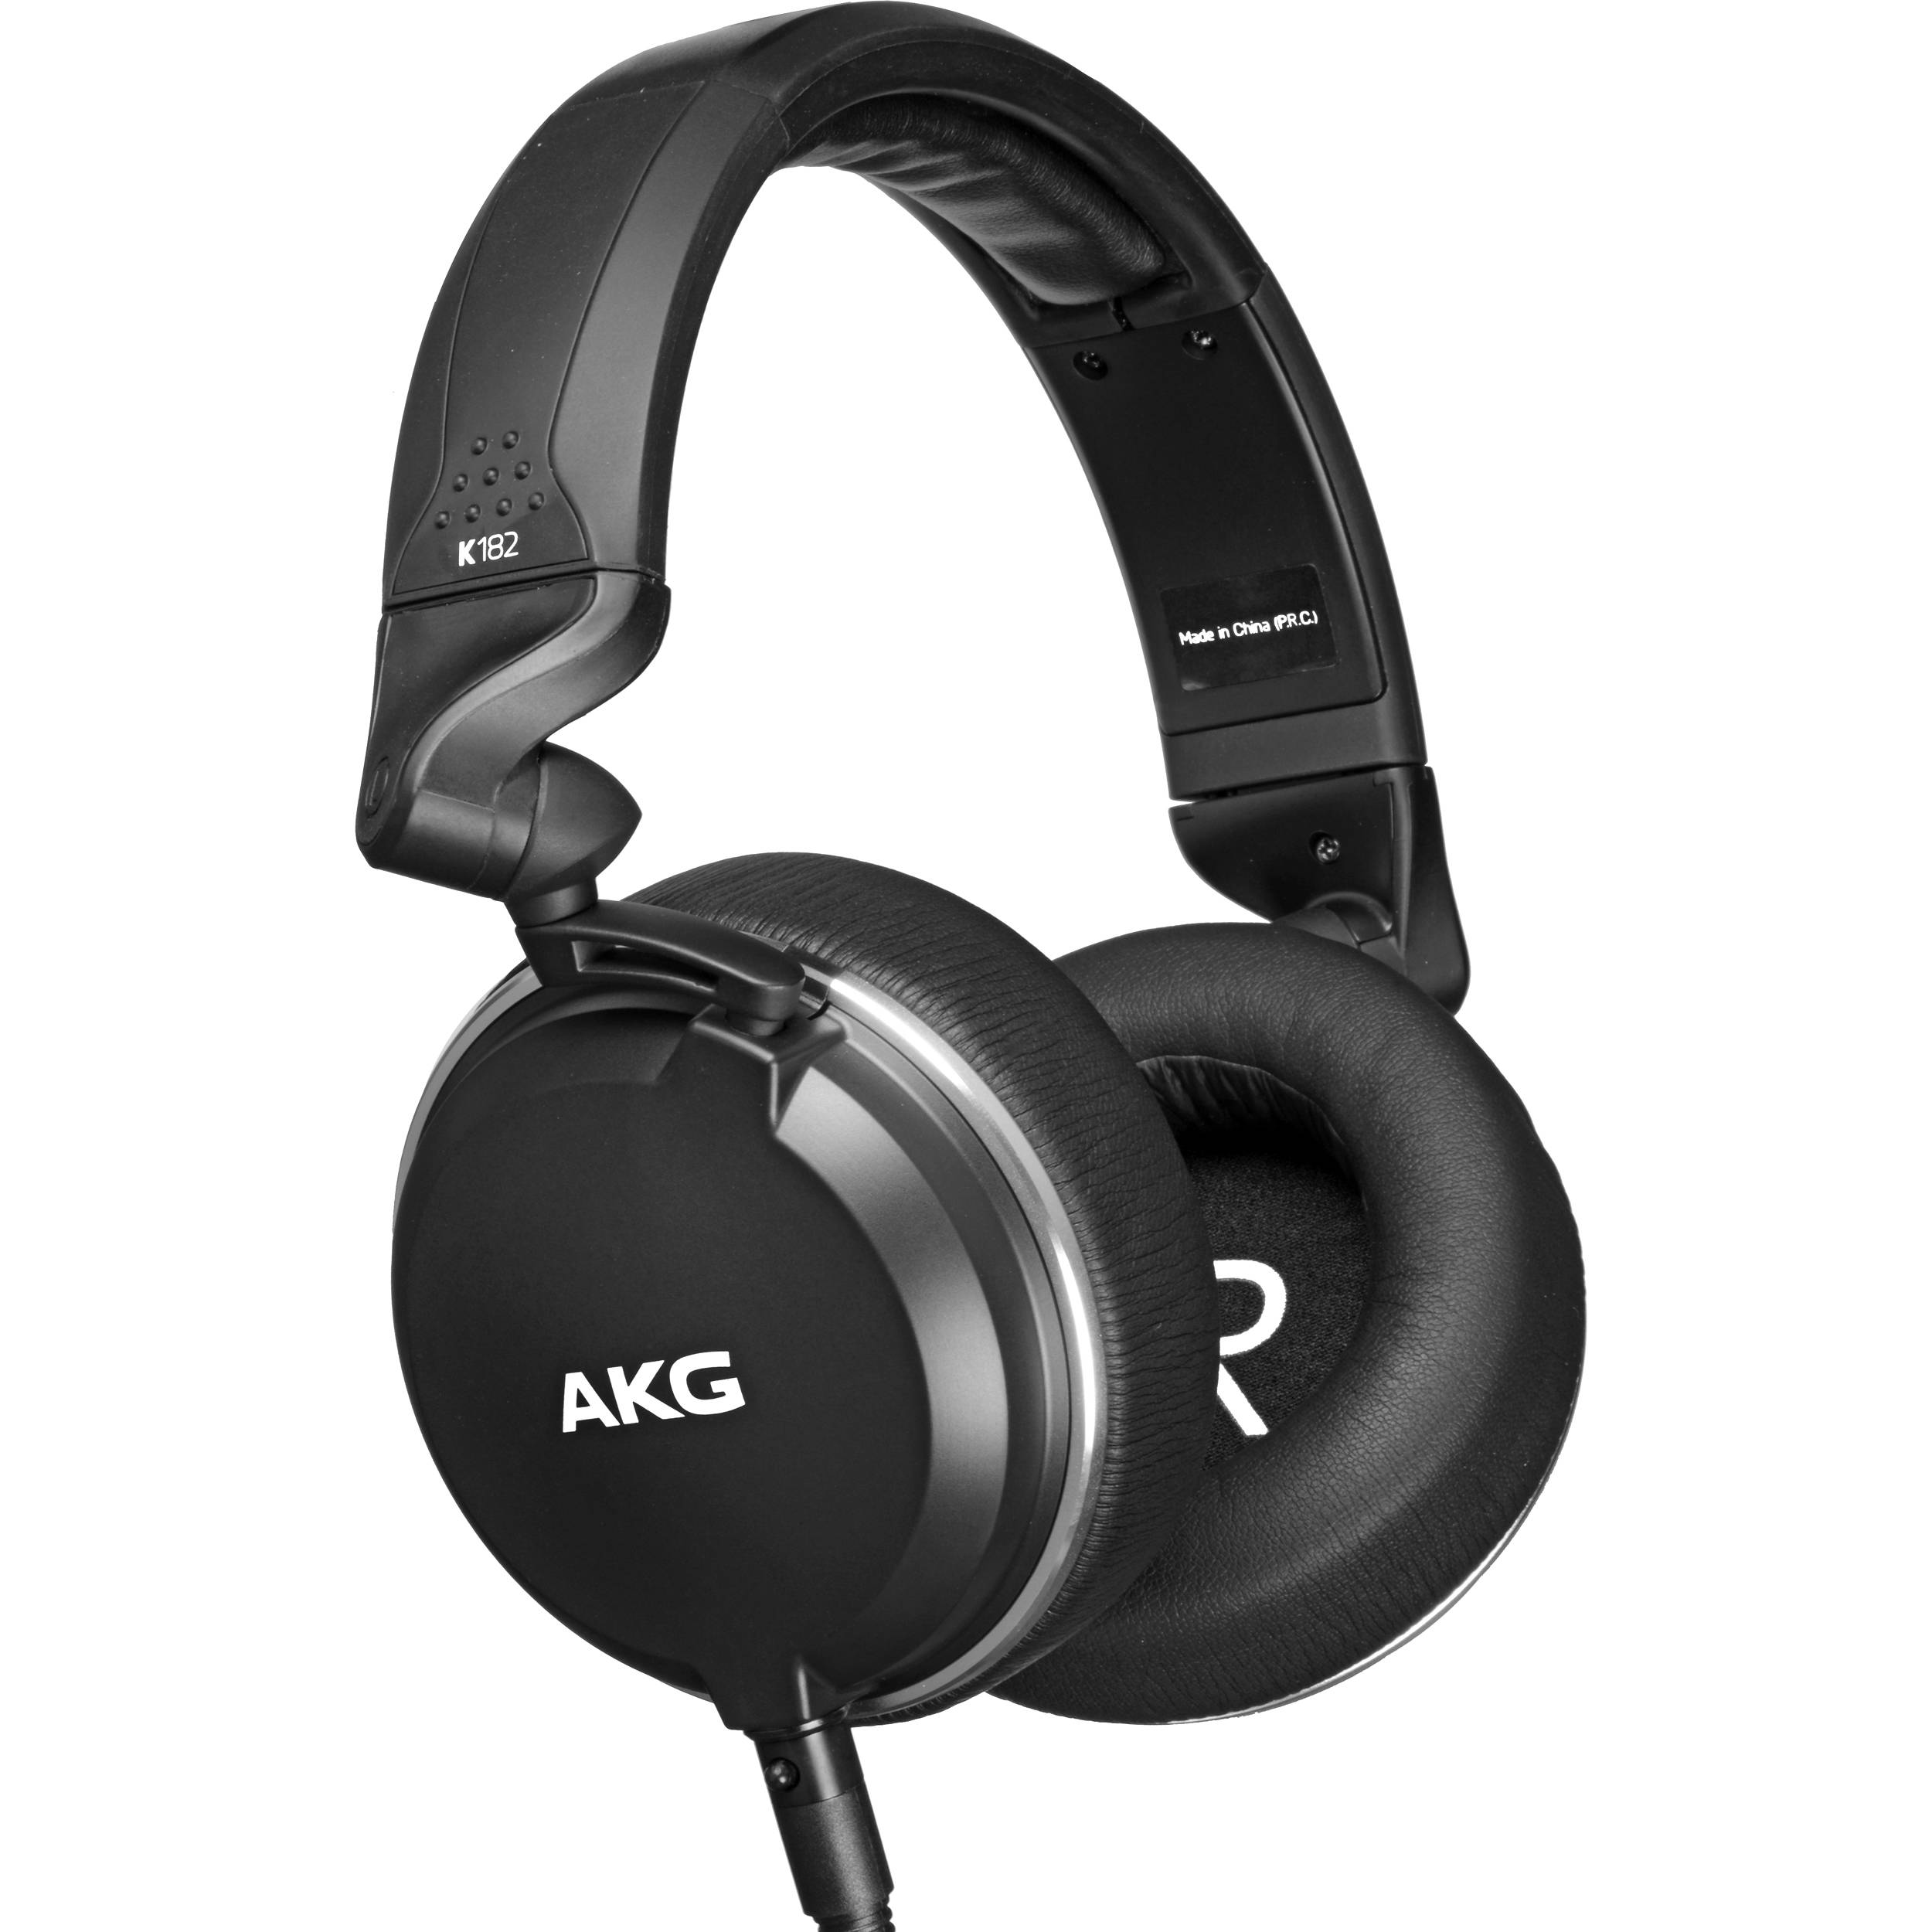 813e4390a00 AKG K182 - Professional Closed-Back Monitor Headphones